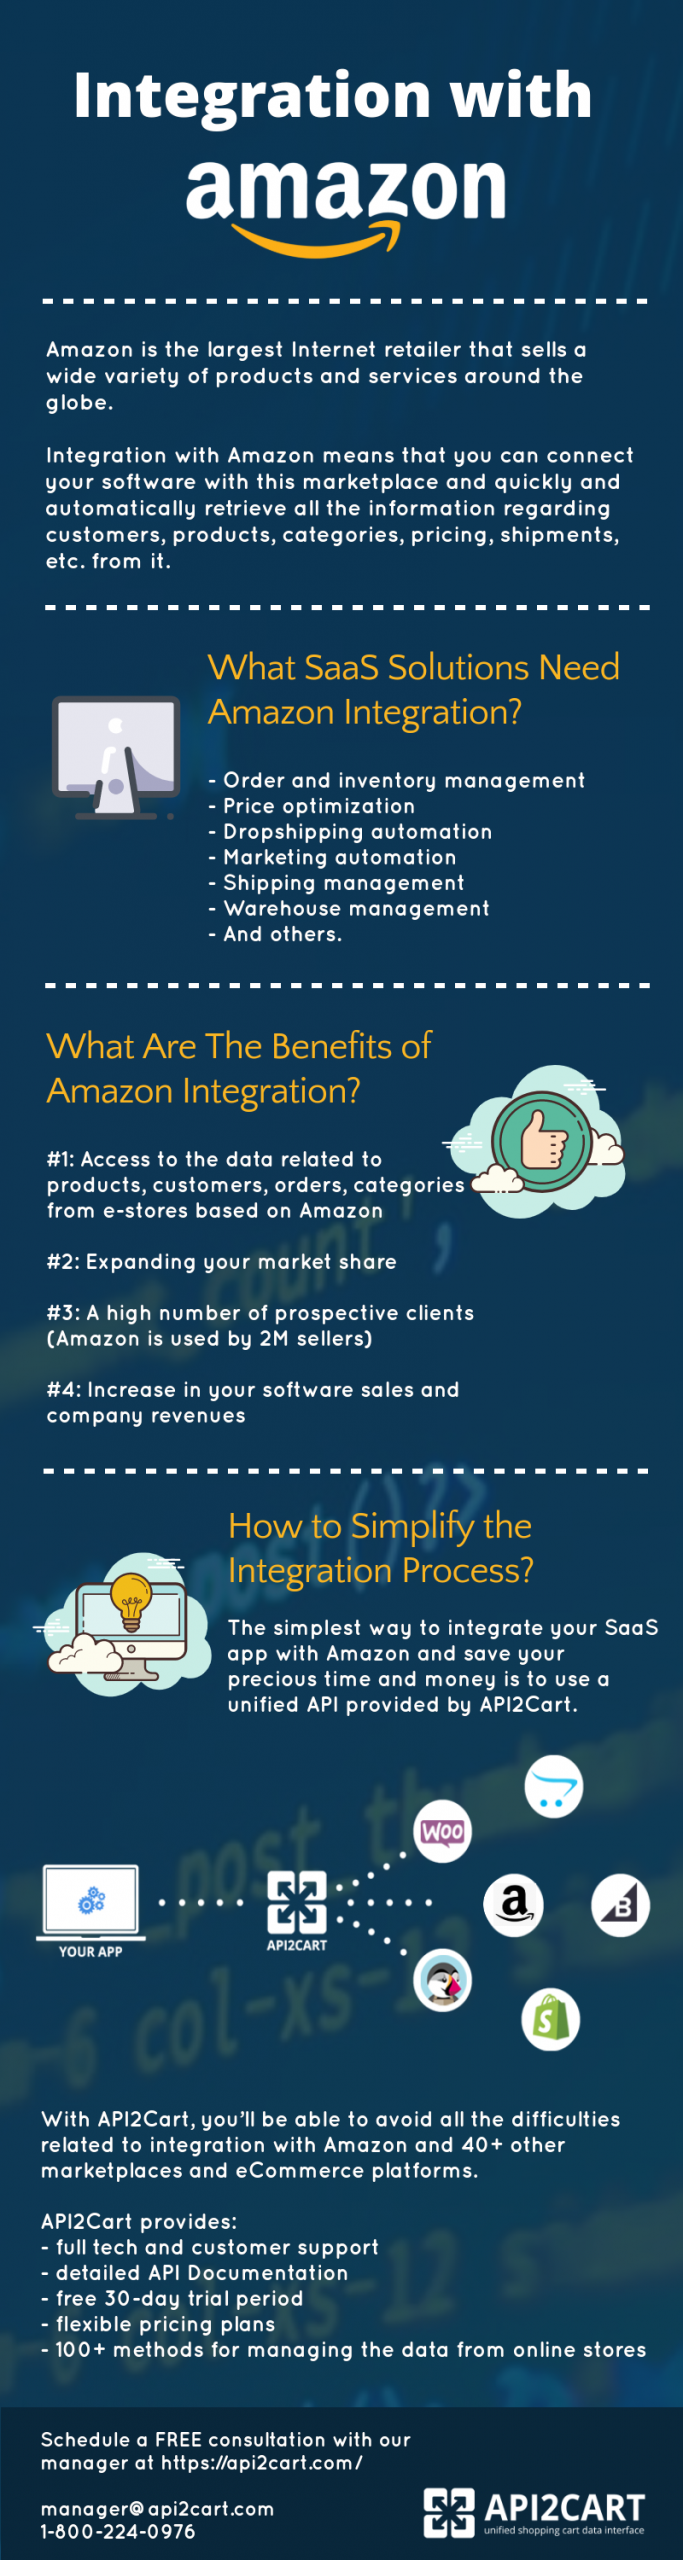 integration with Amazon